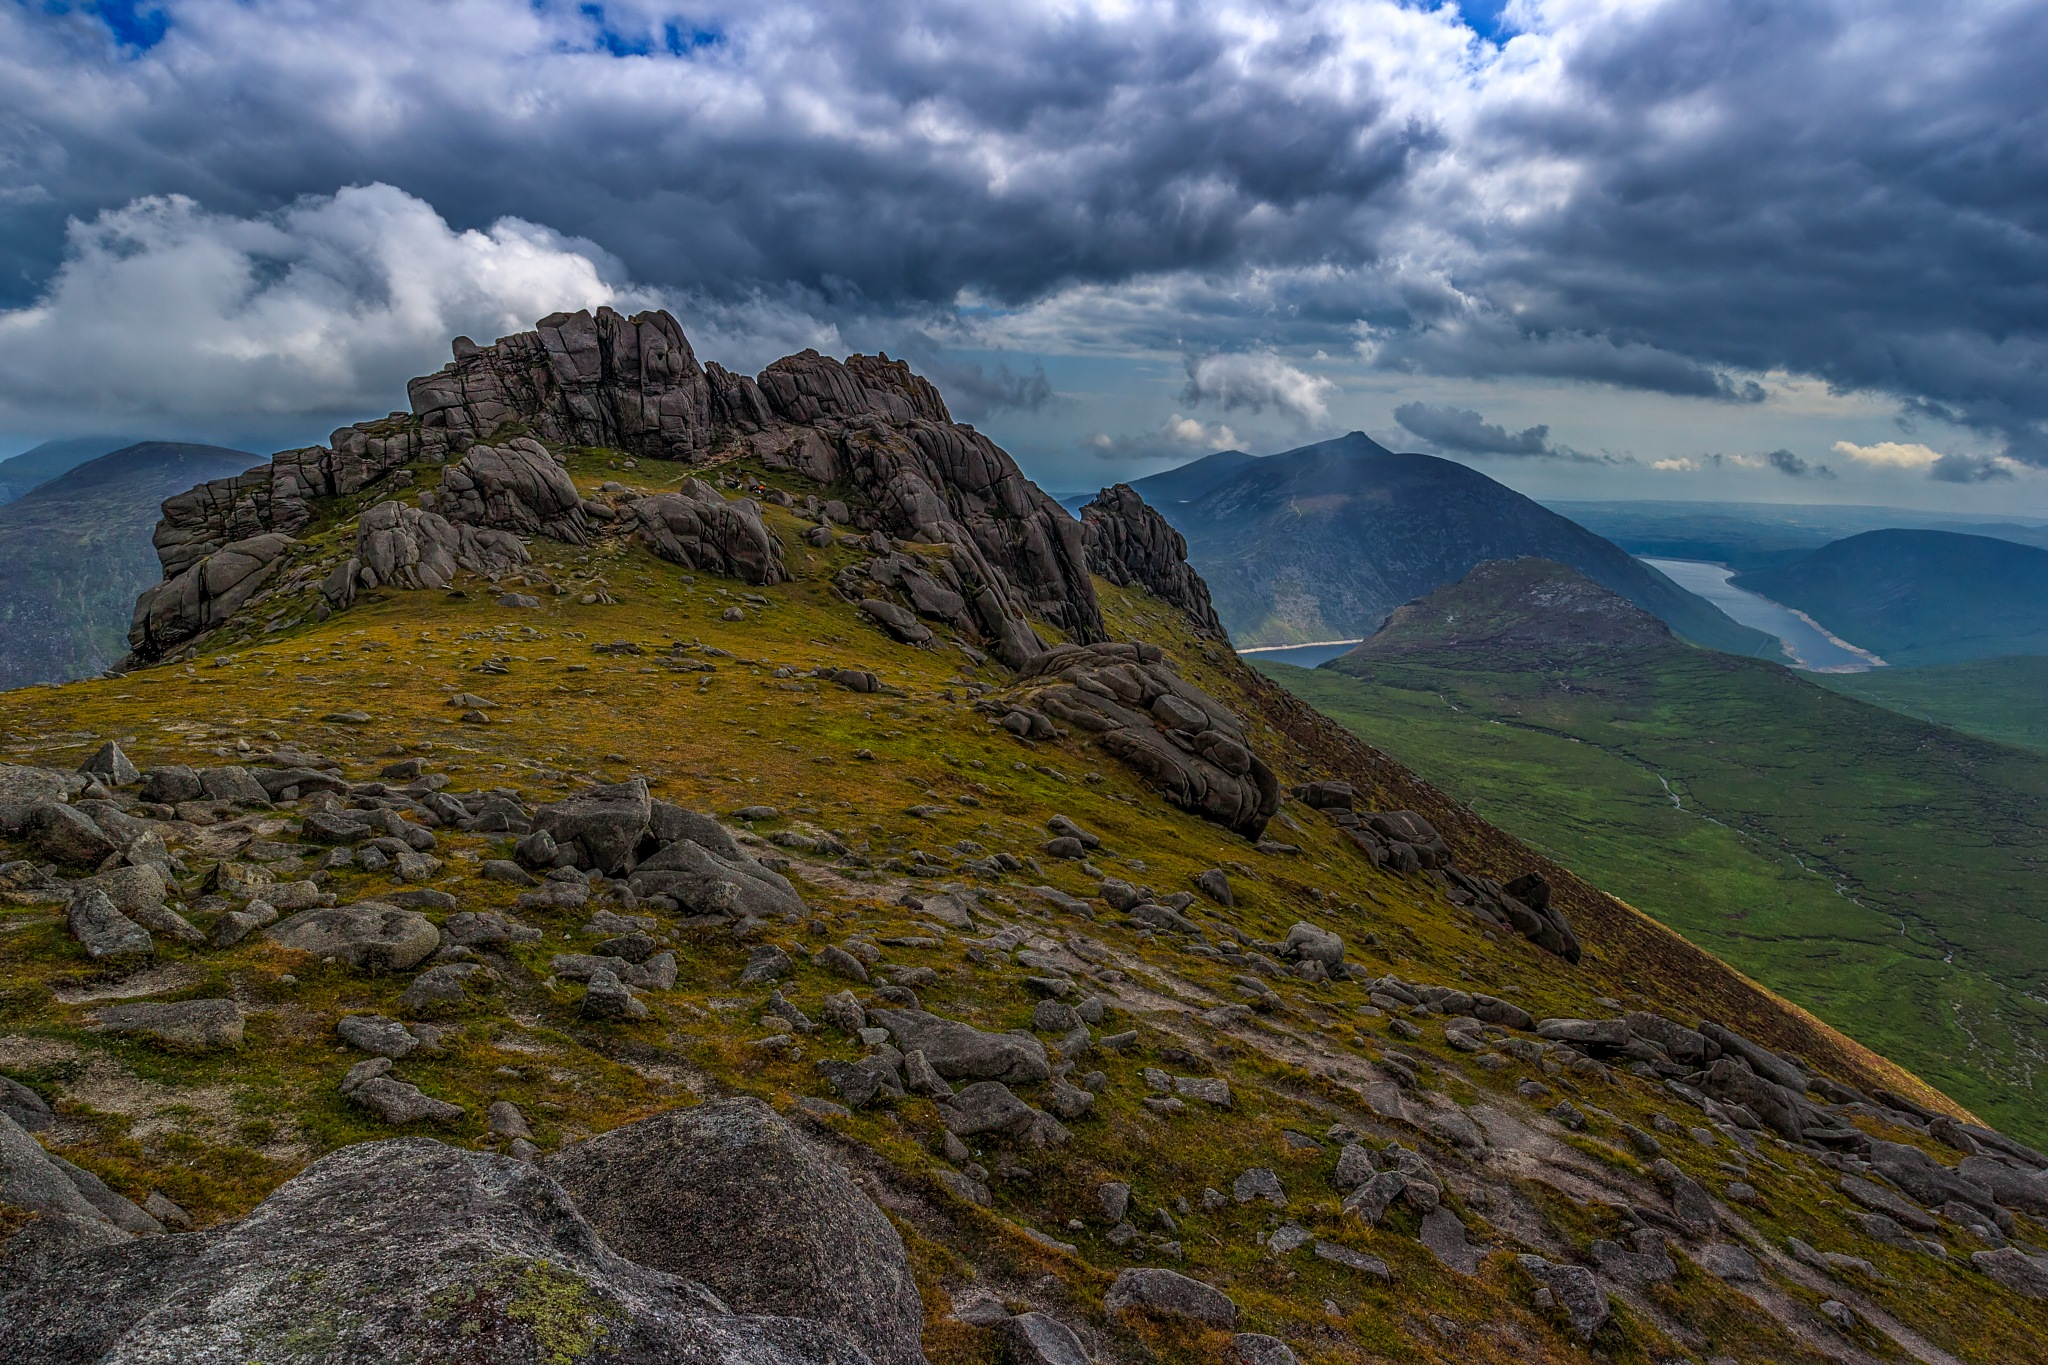 Bearnagh Summit by Barrie Lathwell